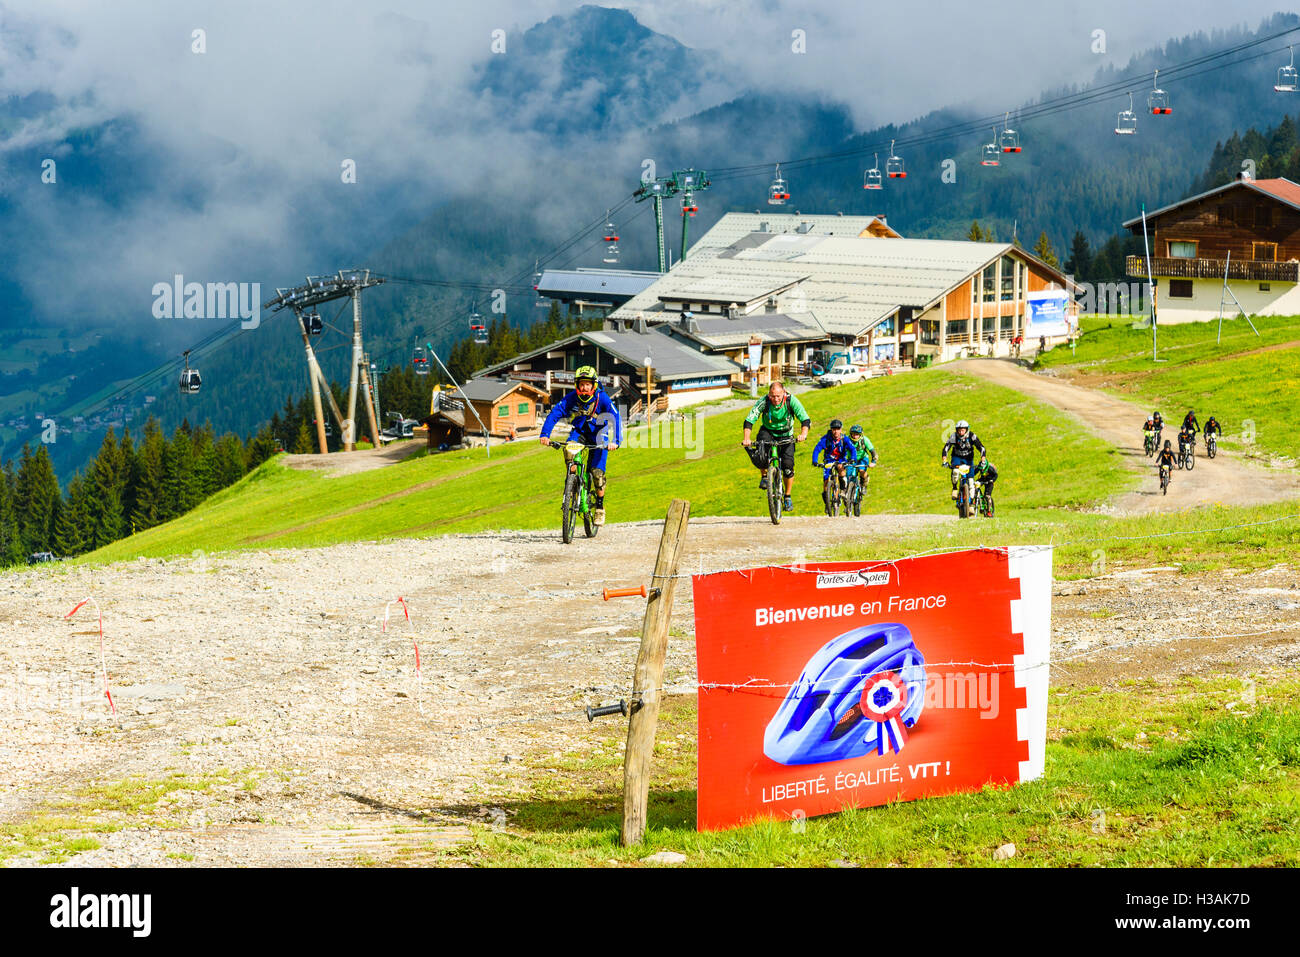 Riders approaching the French-Swiss border during Pass'Portes du Soleil MTB 2016 mountain bike event - Stock Image